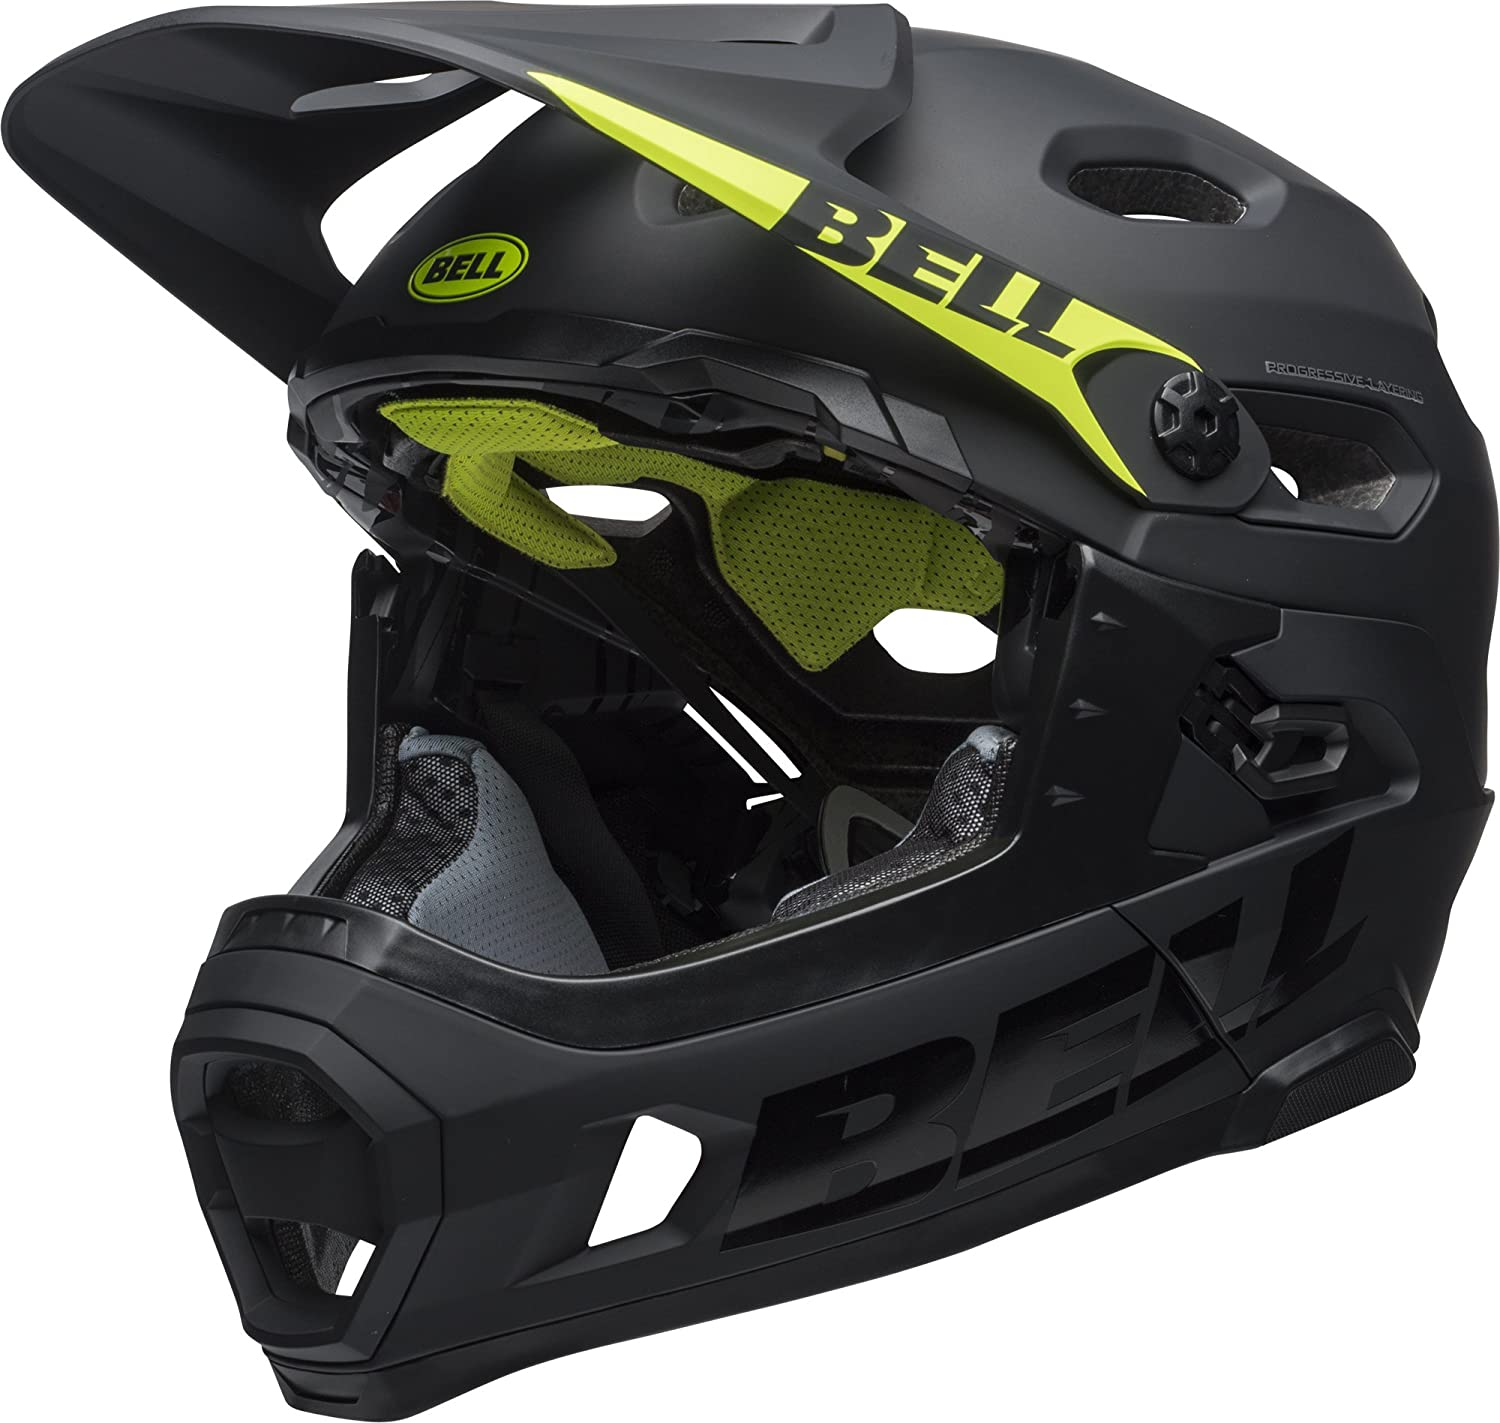 BELL Super Dh MIPS Casco, Unisex Adulto: Amazon.es: Deportes y ...